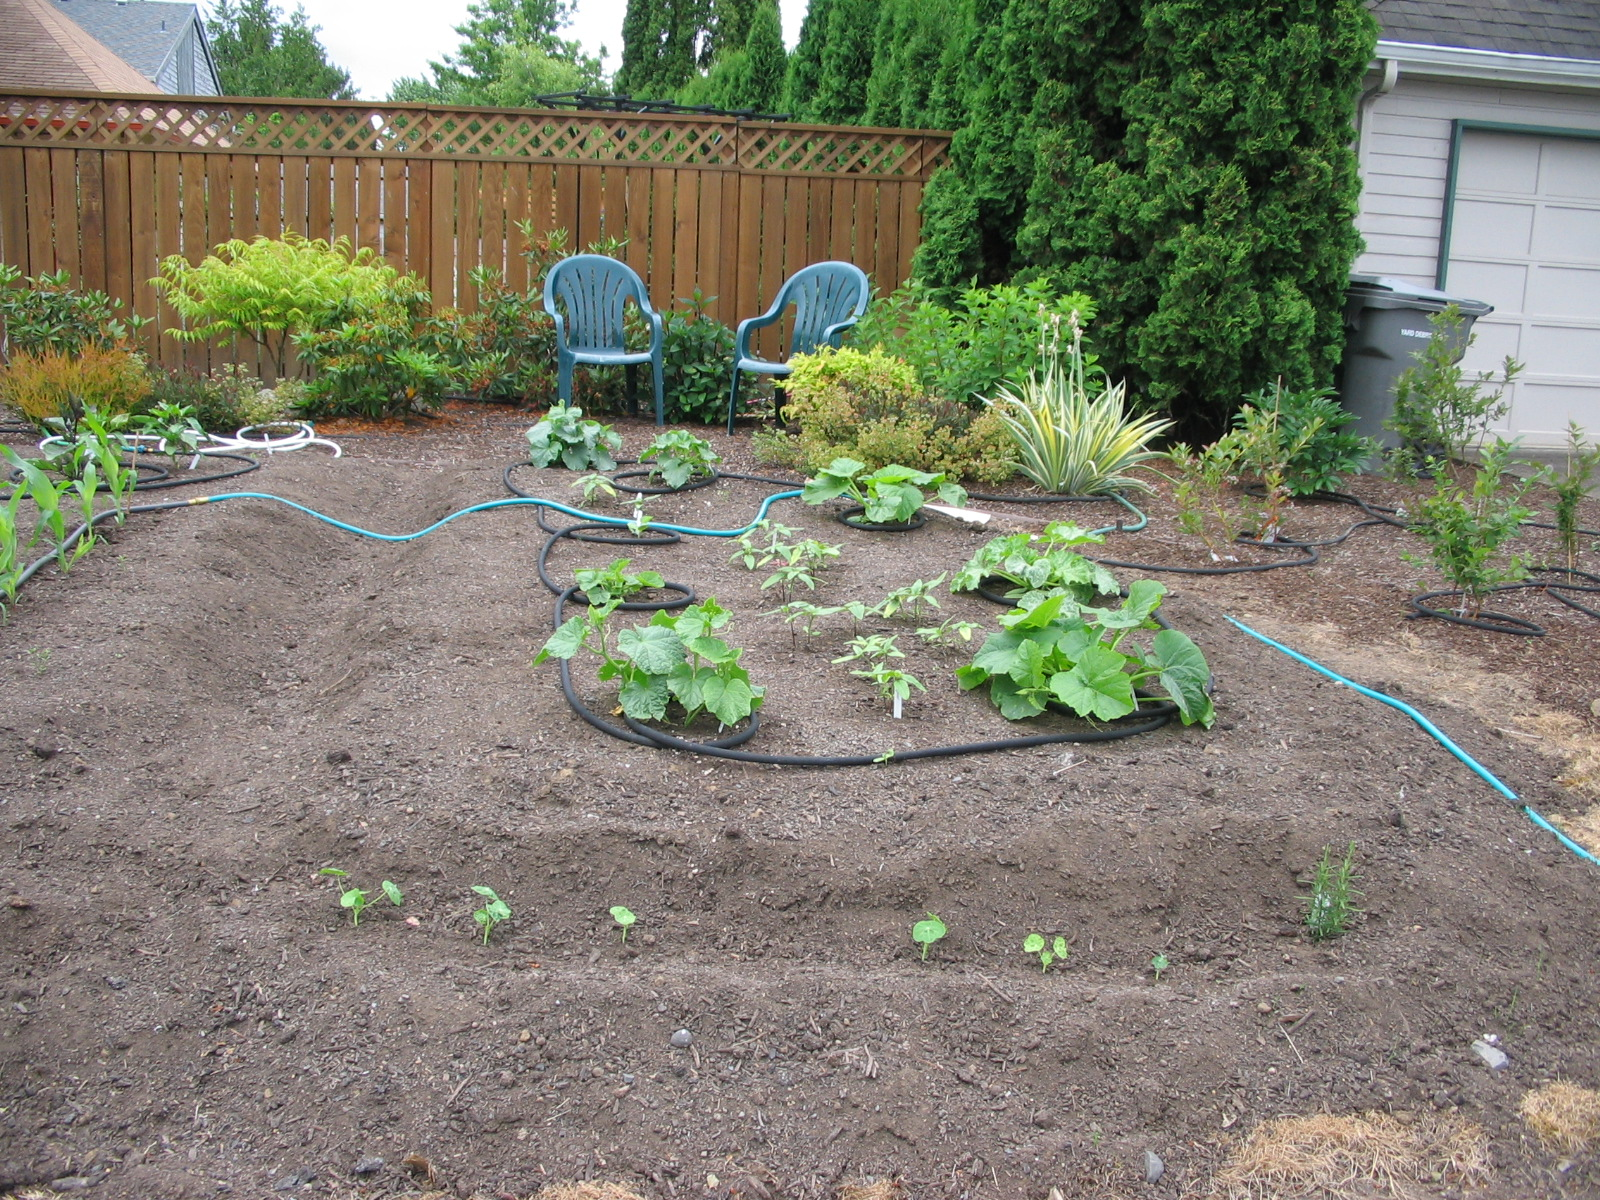 Squash, cucumber, and sunflower section; young blueberries off to the right